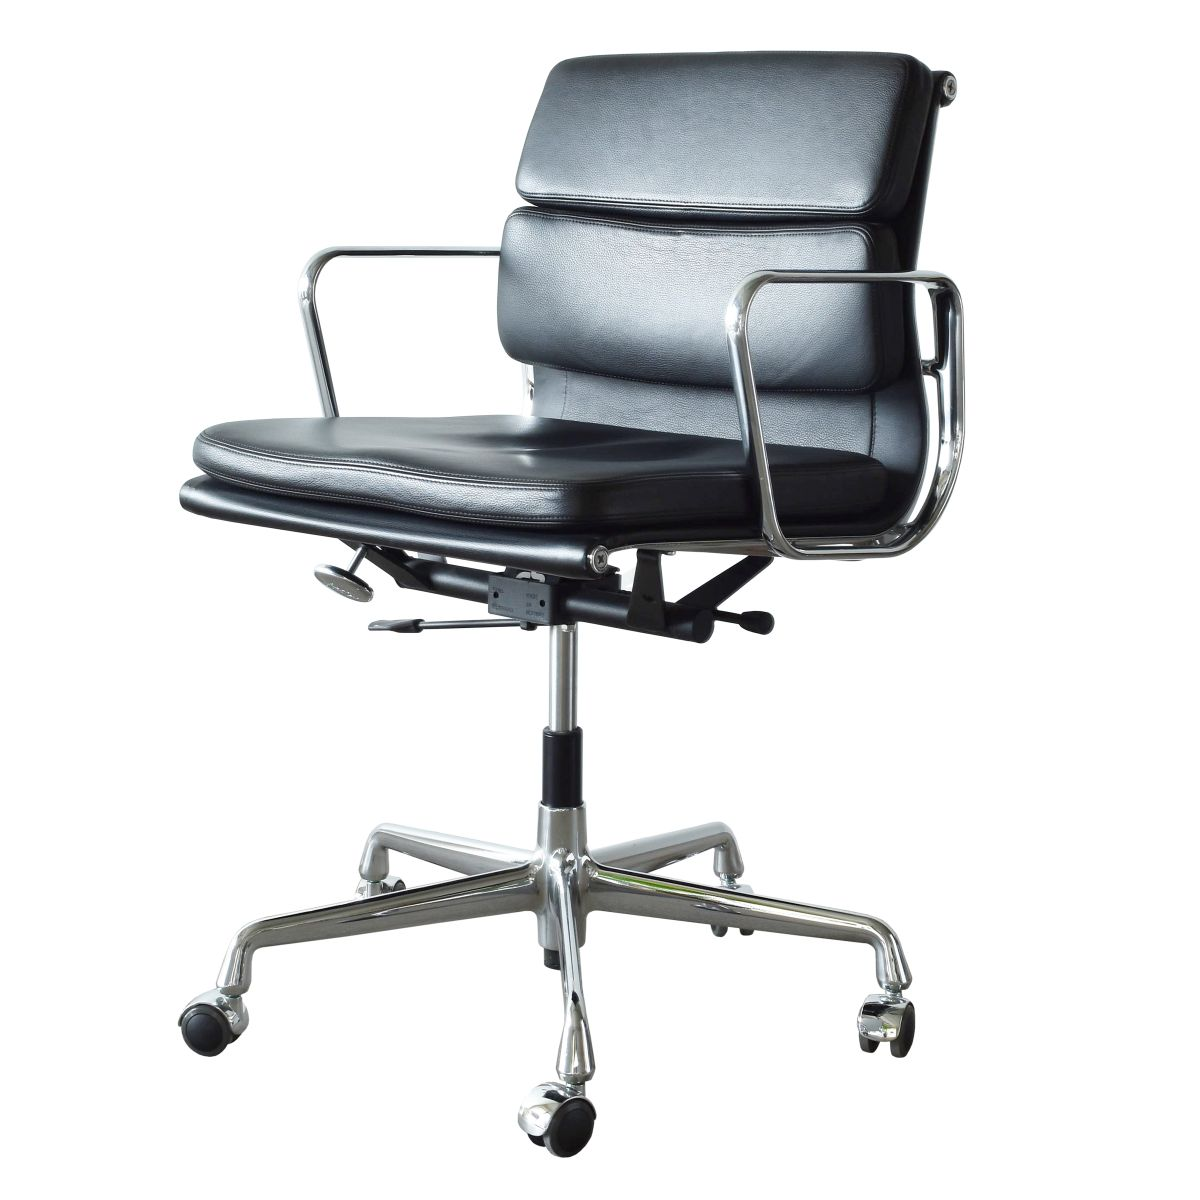 Eames Soft Pad Management Chair Ea217 Soft Pad Management Chair By Charles And Ray Eames